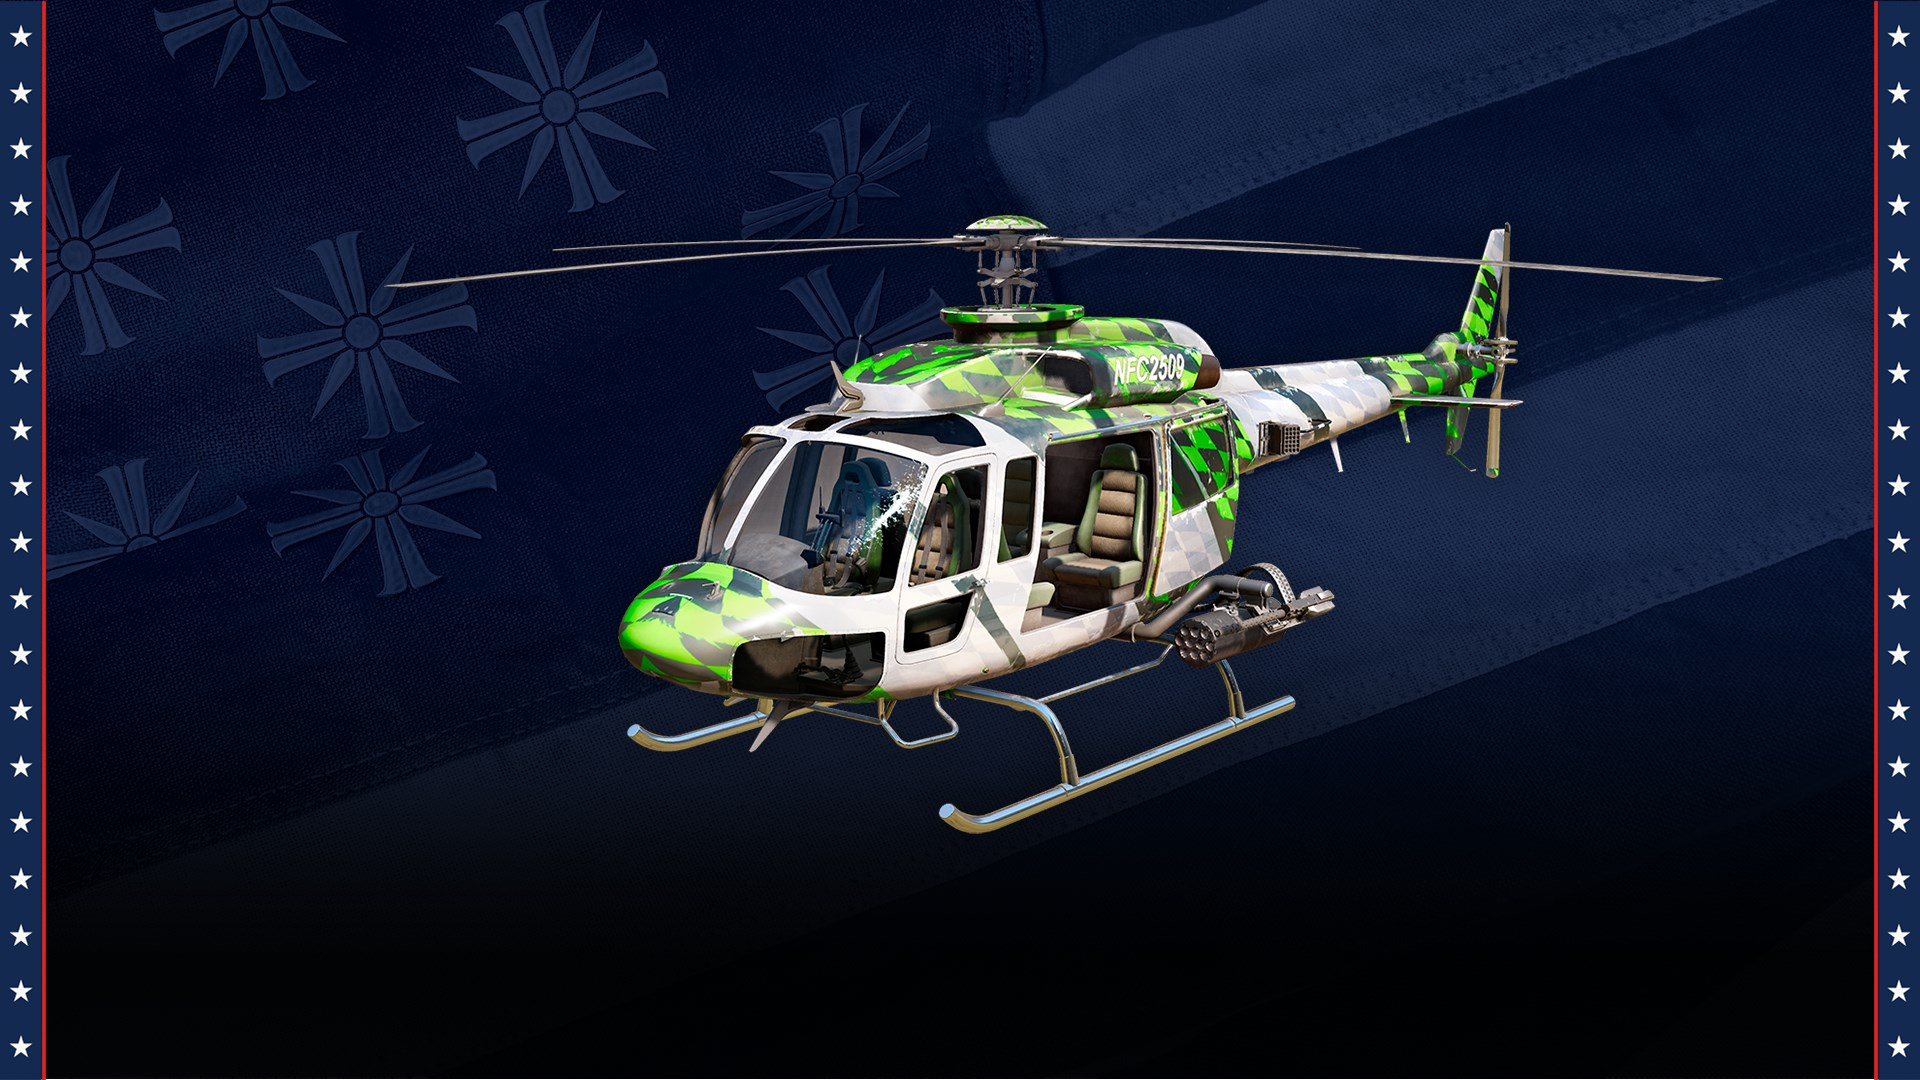 FAR CRY 5 - Helicopter with Aerial Force Skin